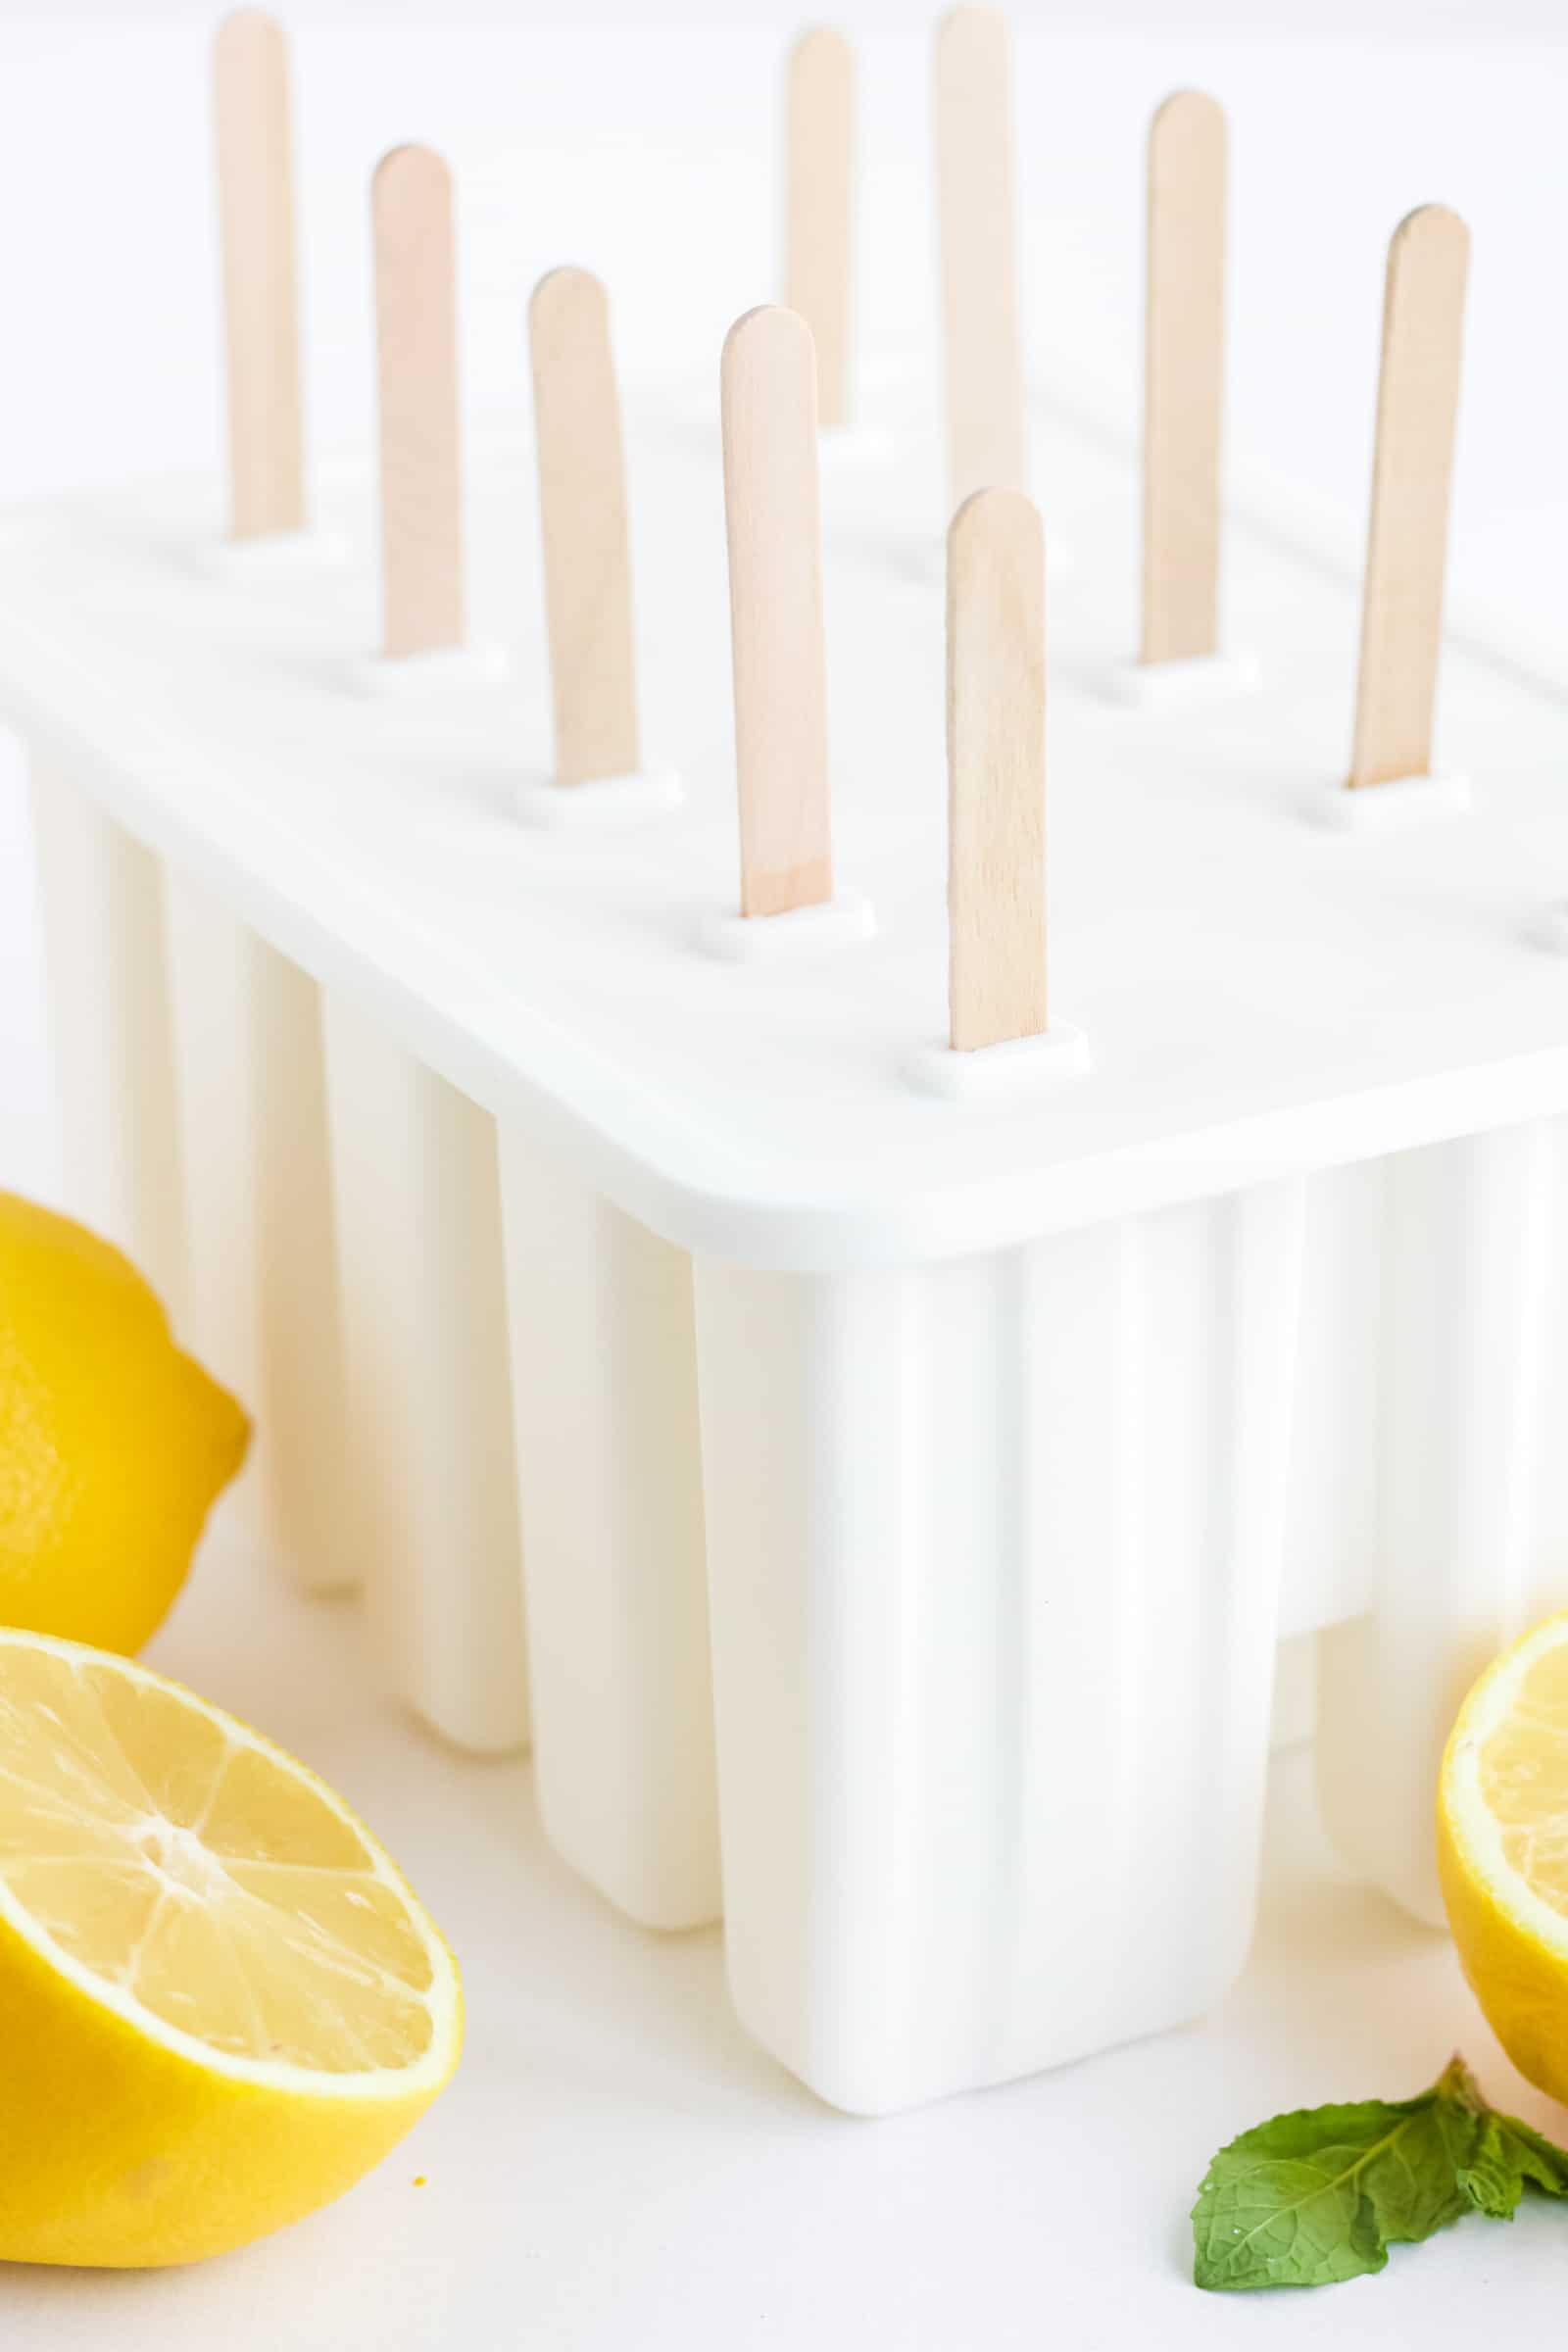 10 lemonade popsicles in a mold with cut lemons in the foreground